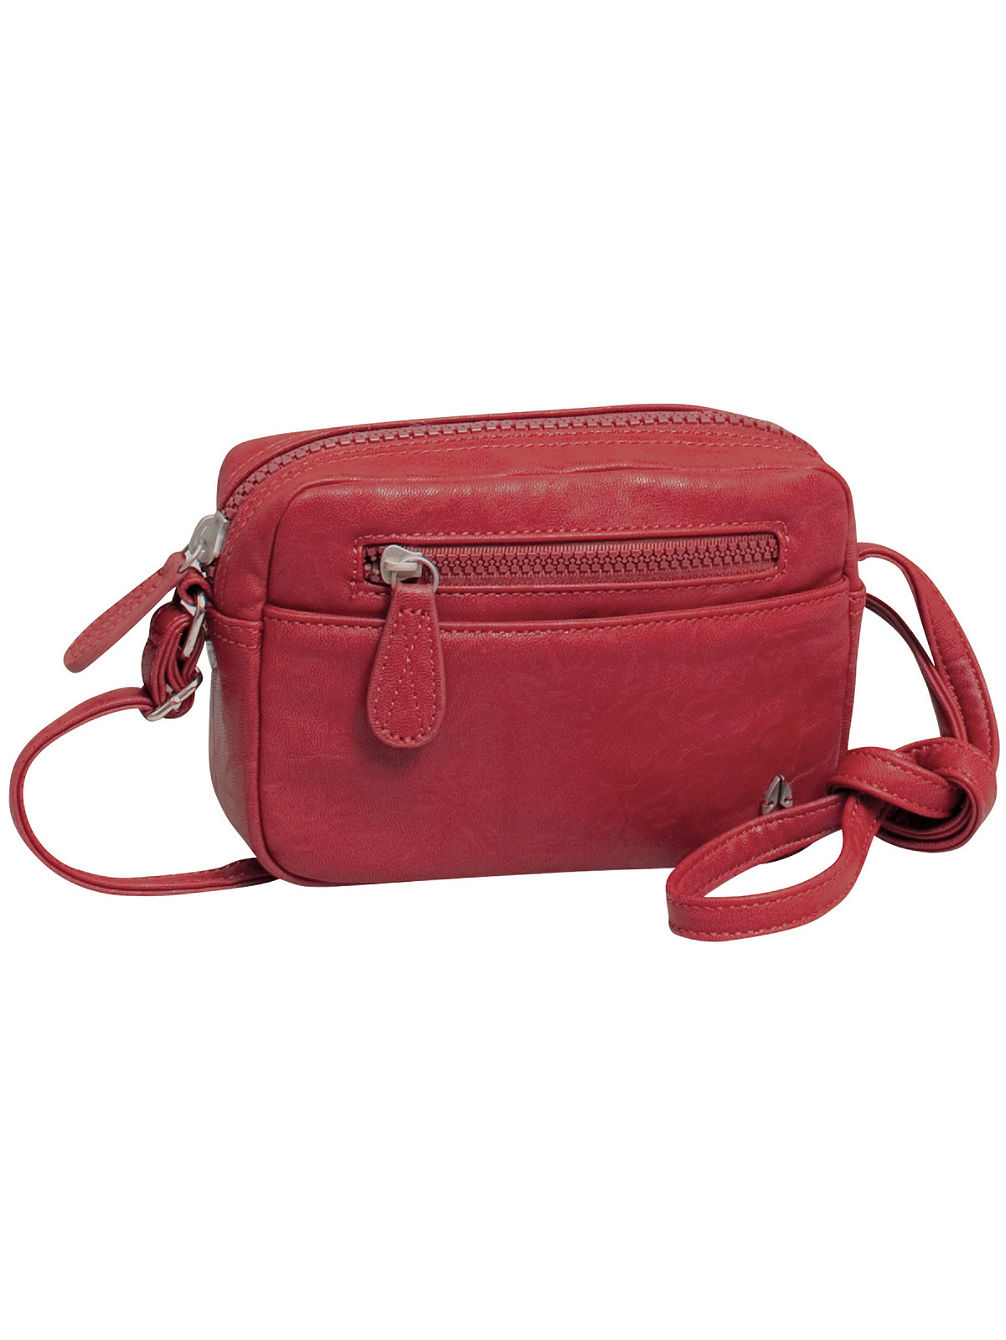 Backstage Crossbody Purse Bag Women